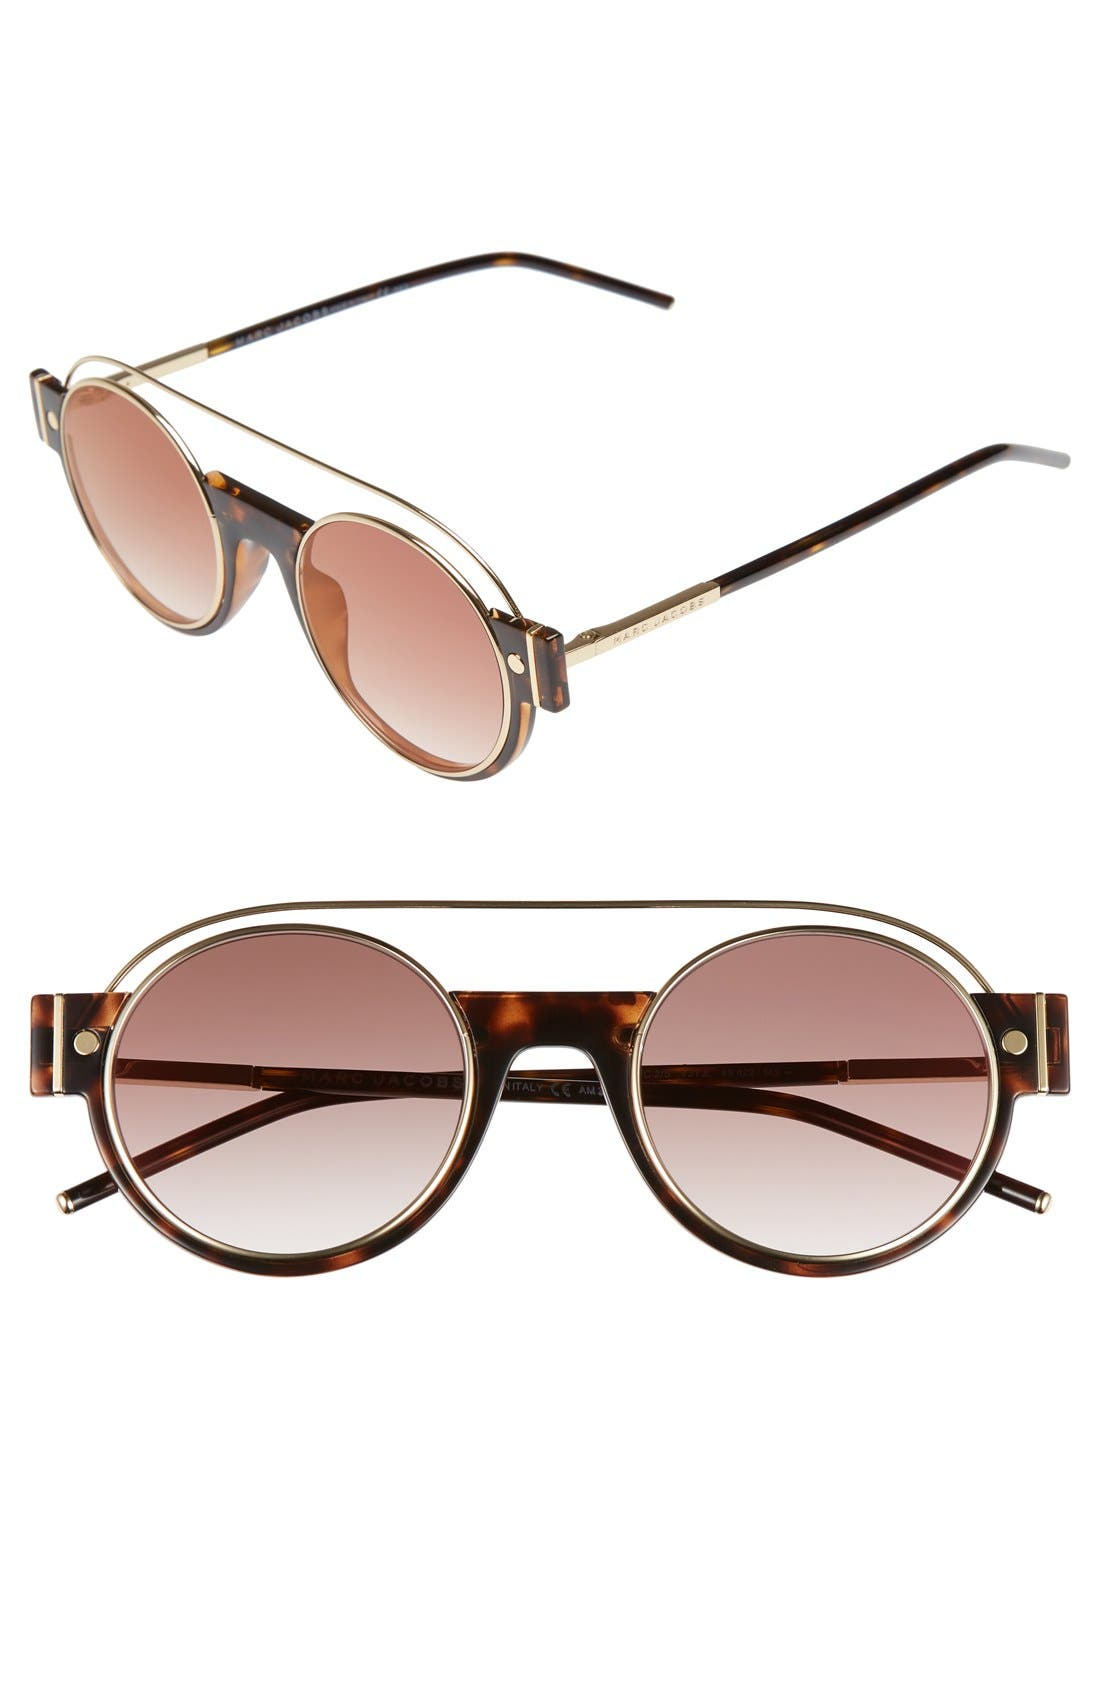 49mm Round Sunglasses,                         Main,                         color, 210